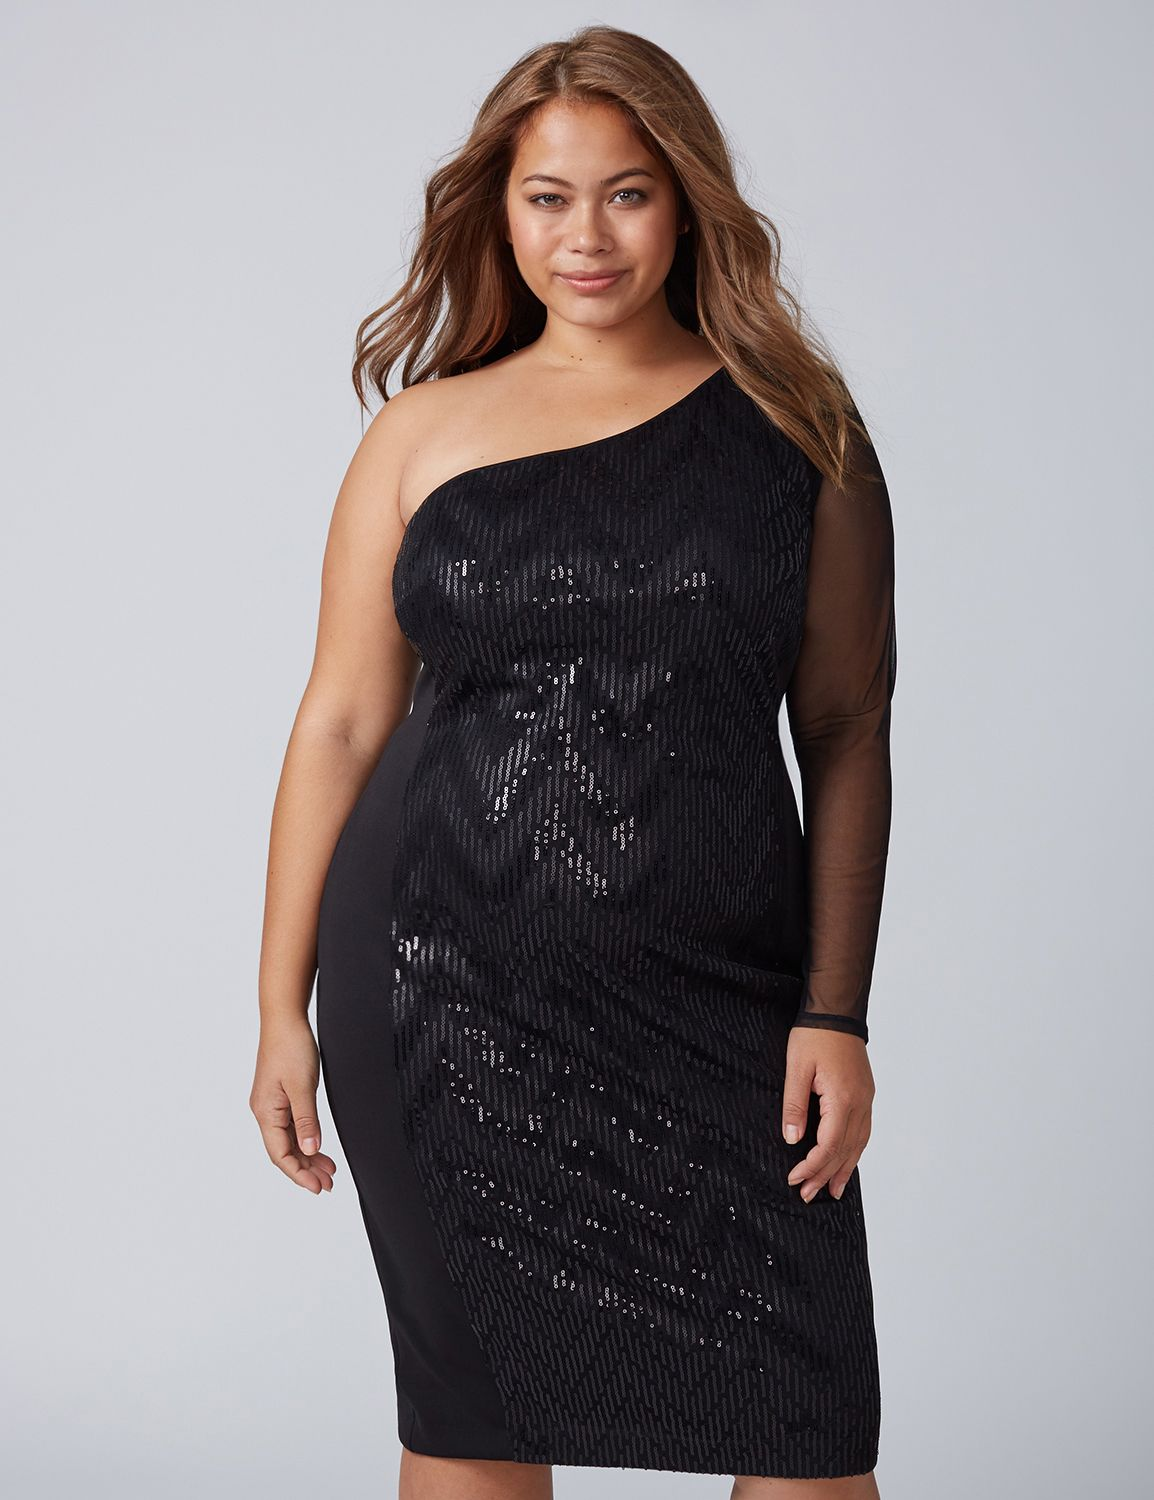 Fancy Cocktail Dresses with Sleeves